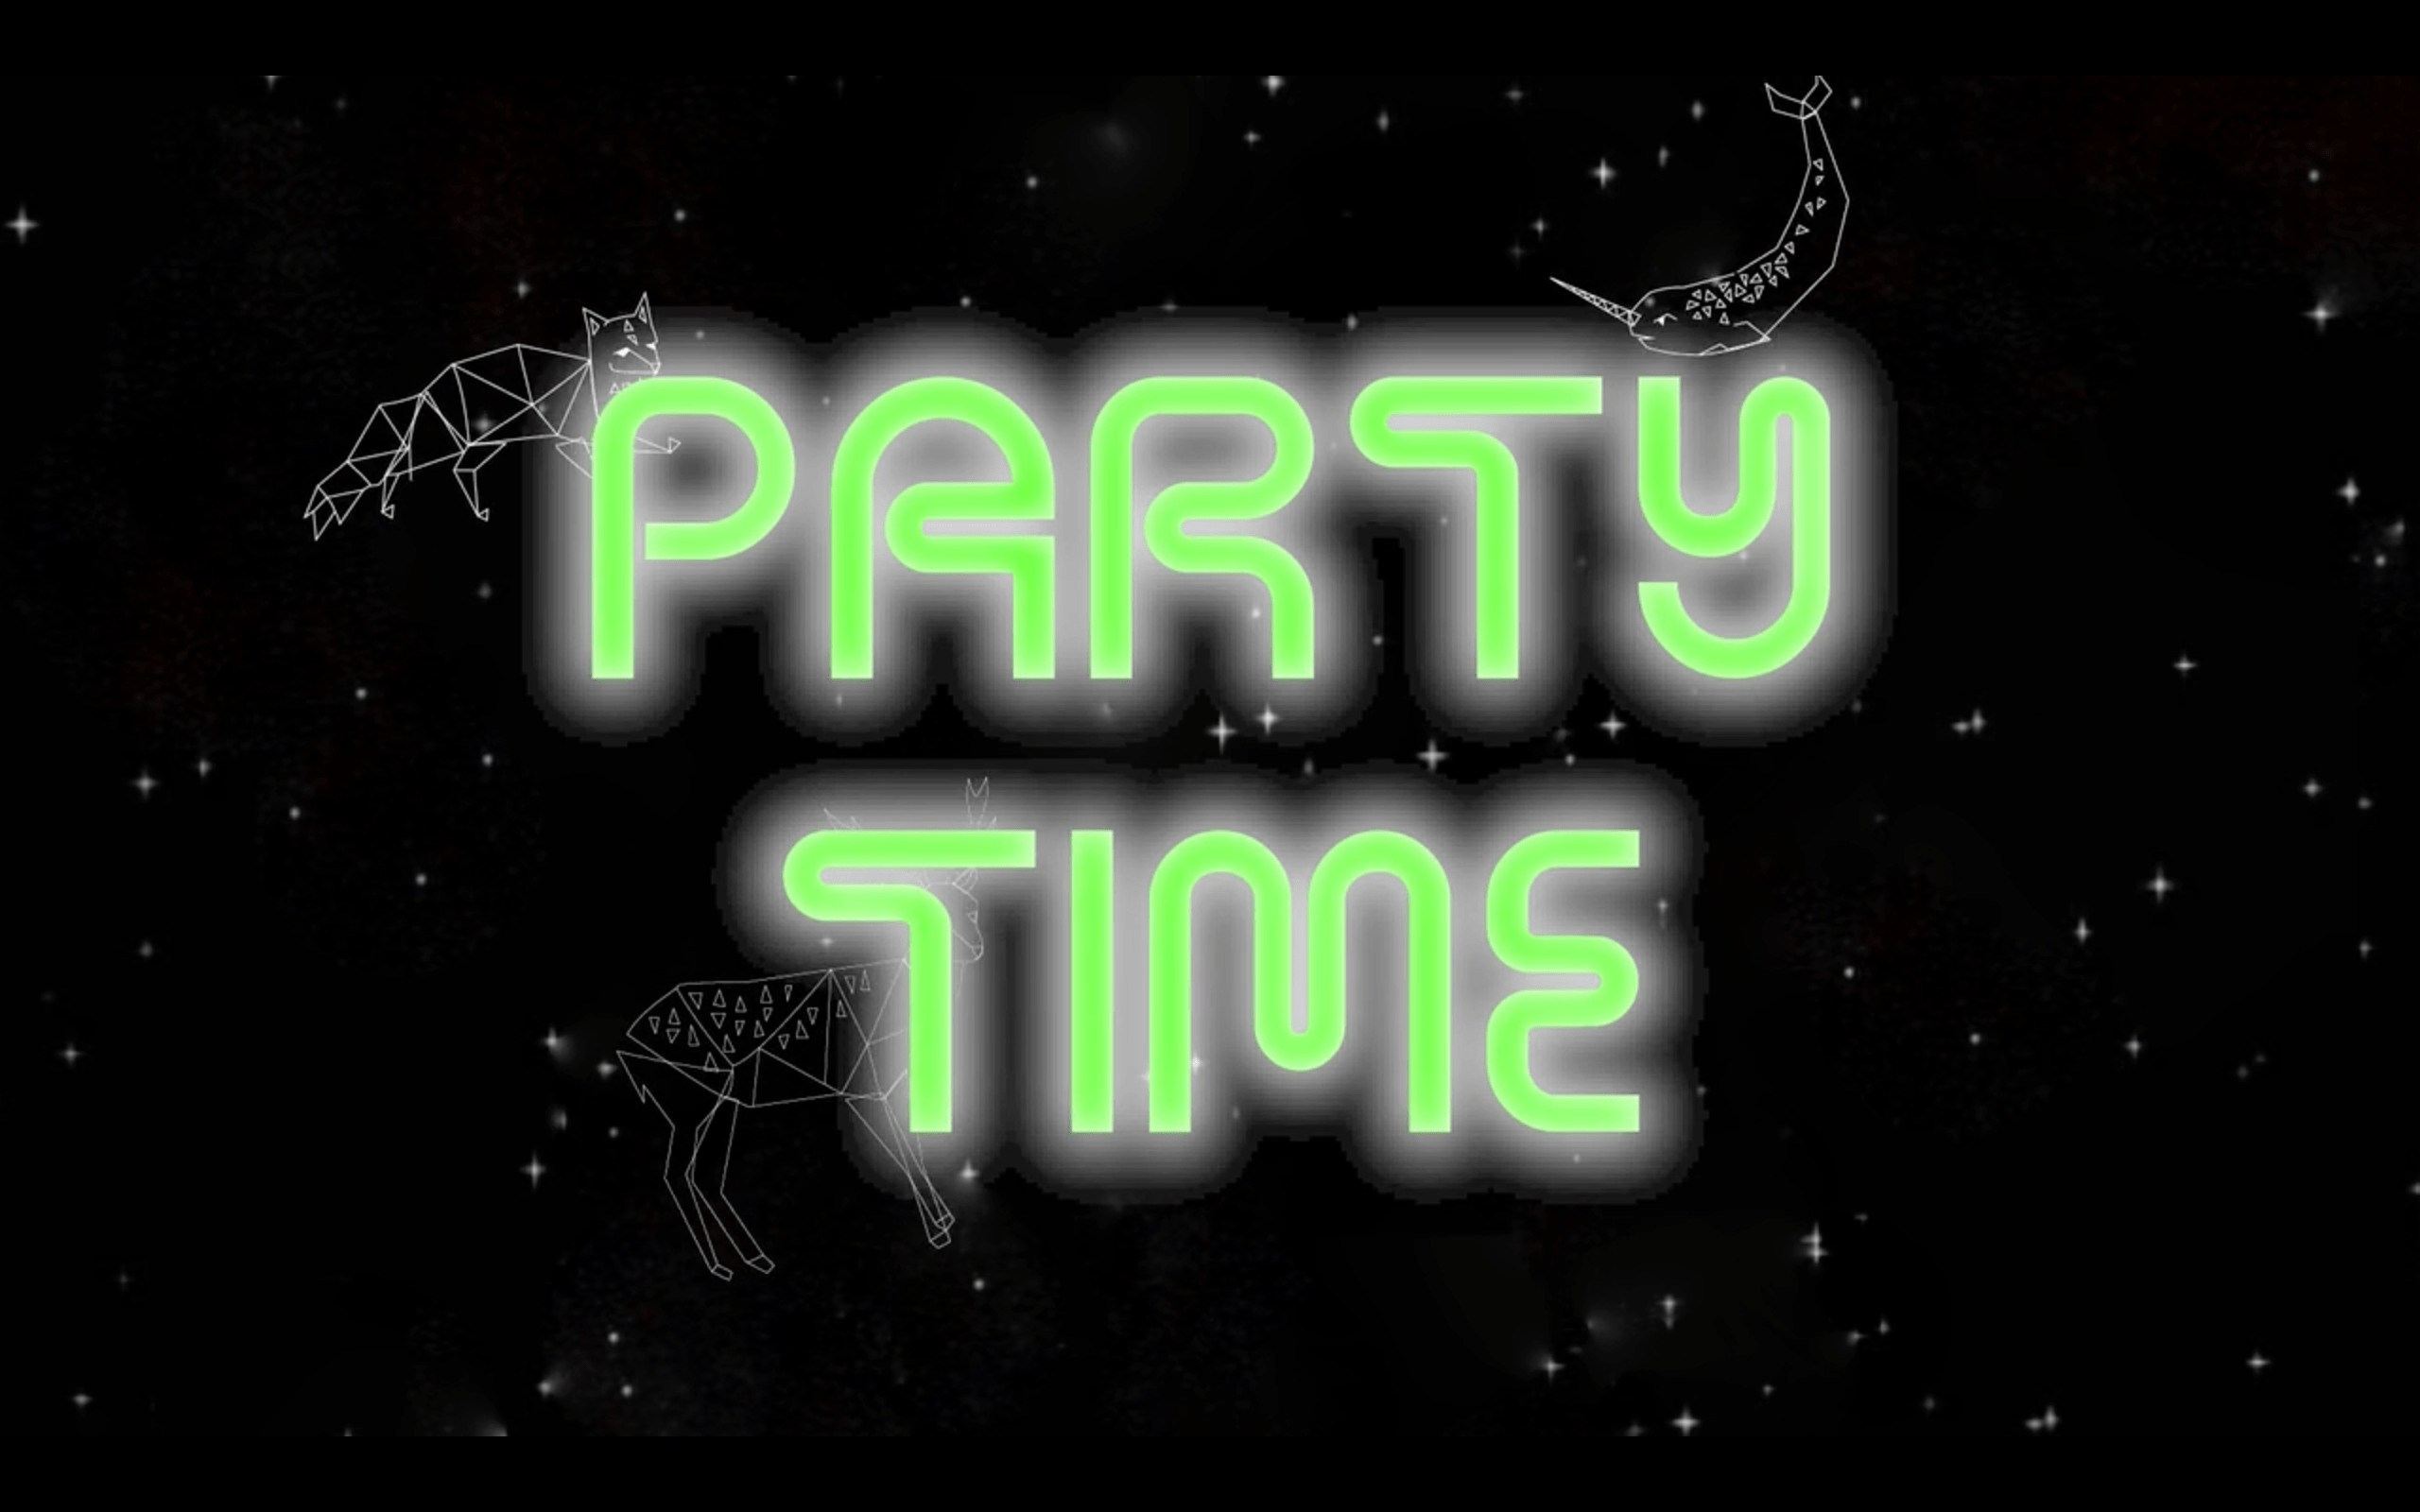 [FINAL] Let's Party, in the galaxy